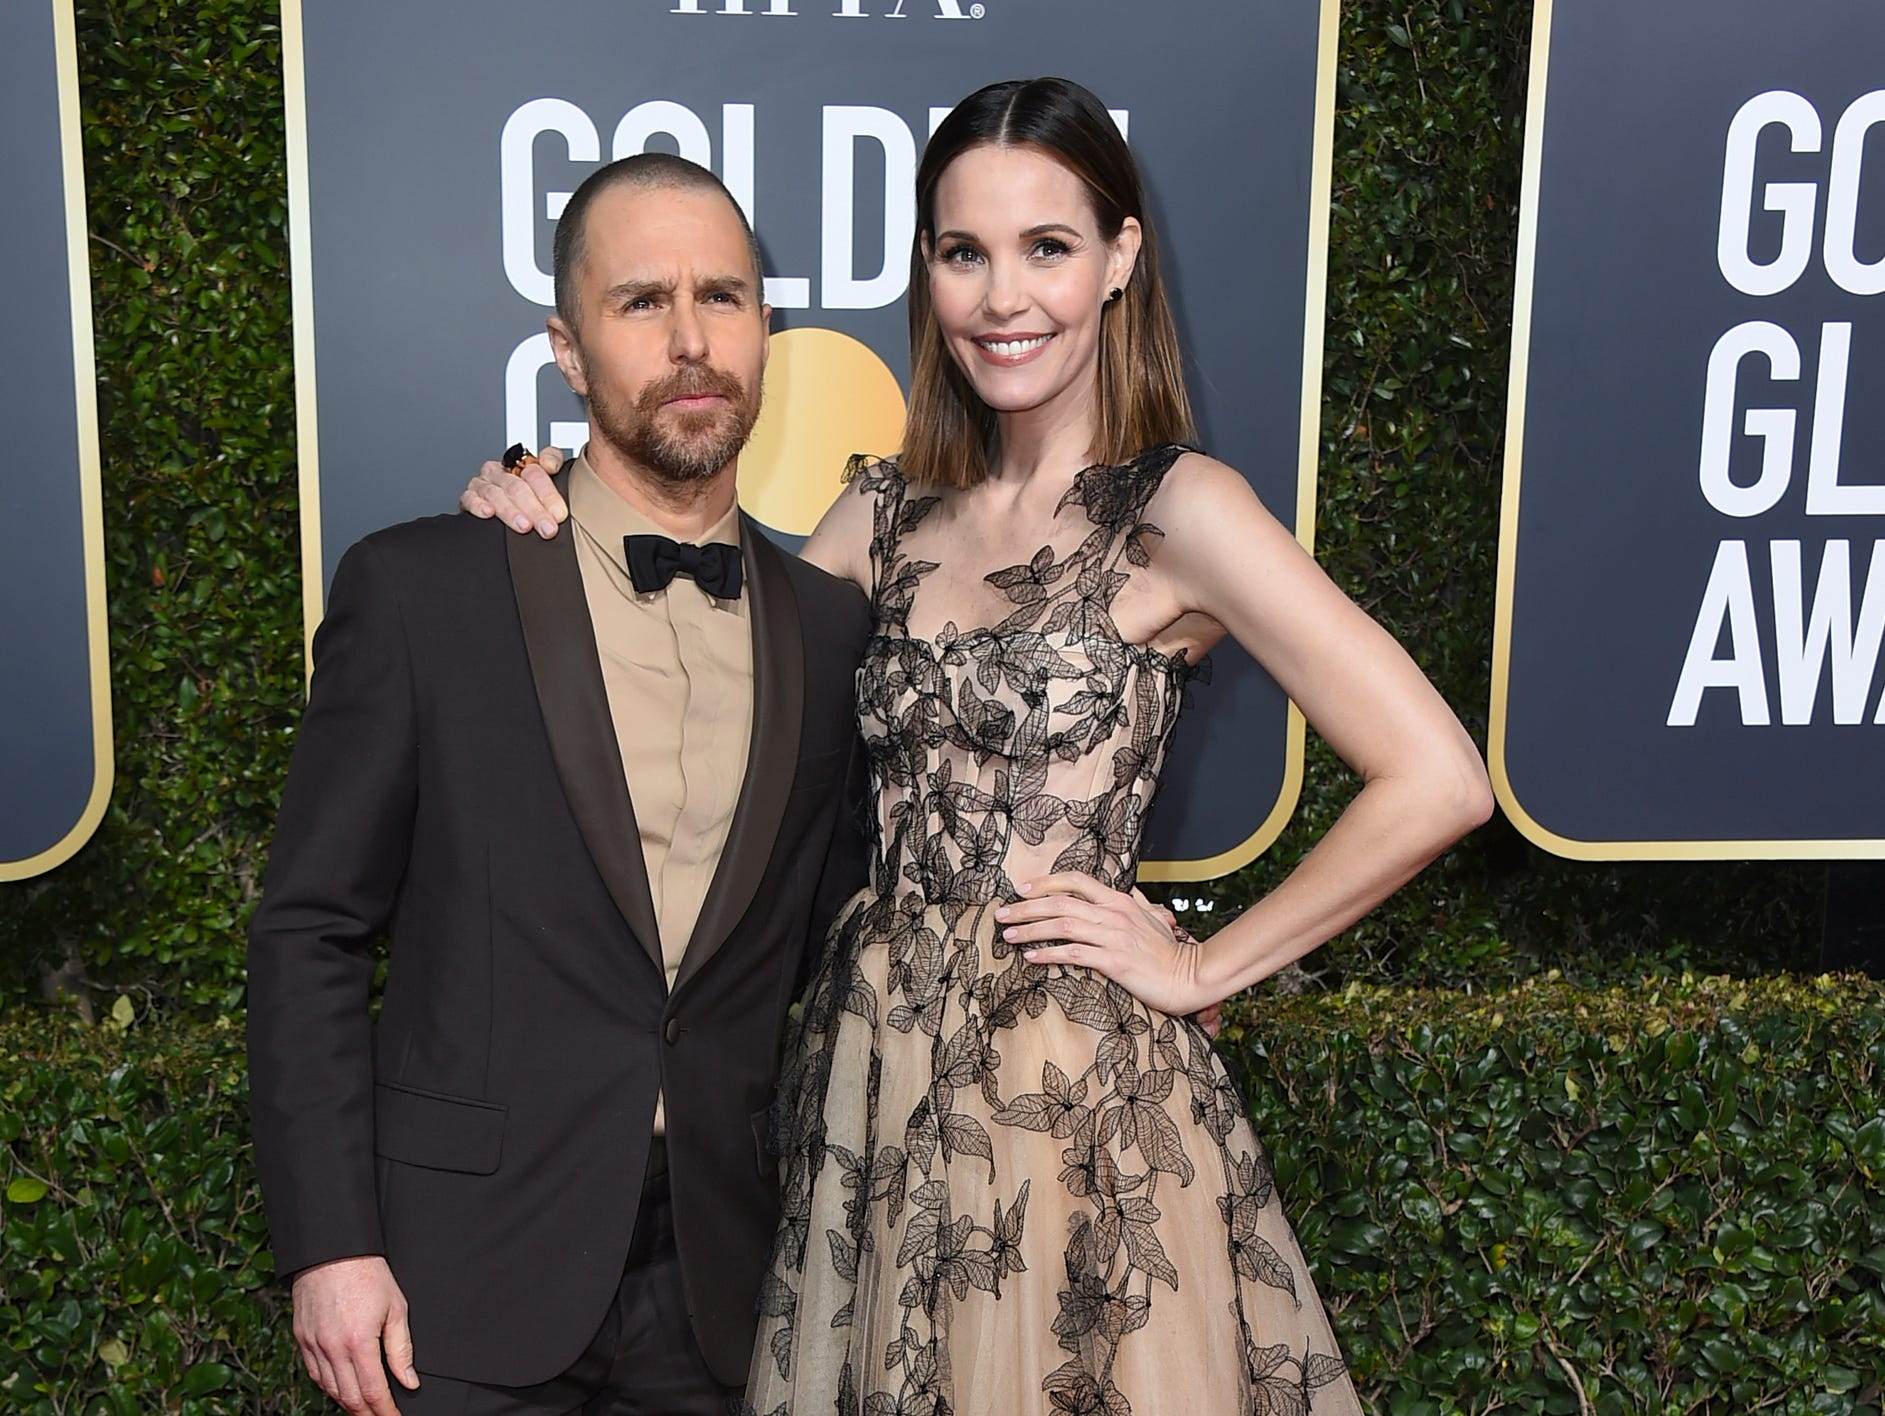 Sam Rockwell, left, and Leslie Bibb arrive at the 76th annual Golden Globe Awards at the Beverly Hilton Hotel.